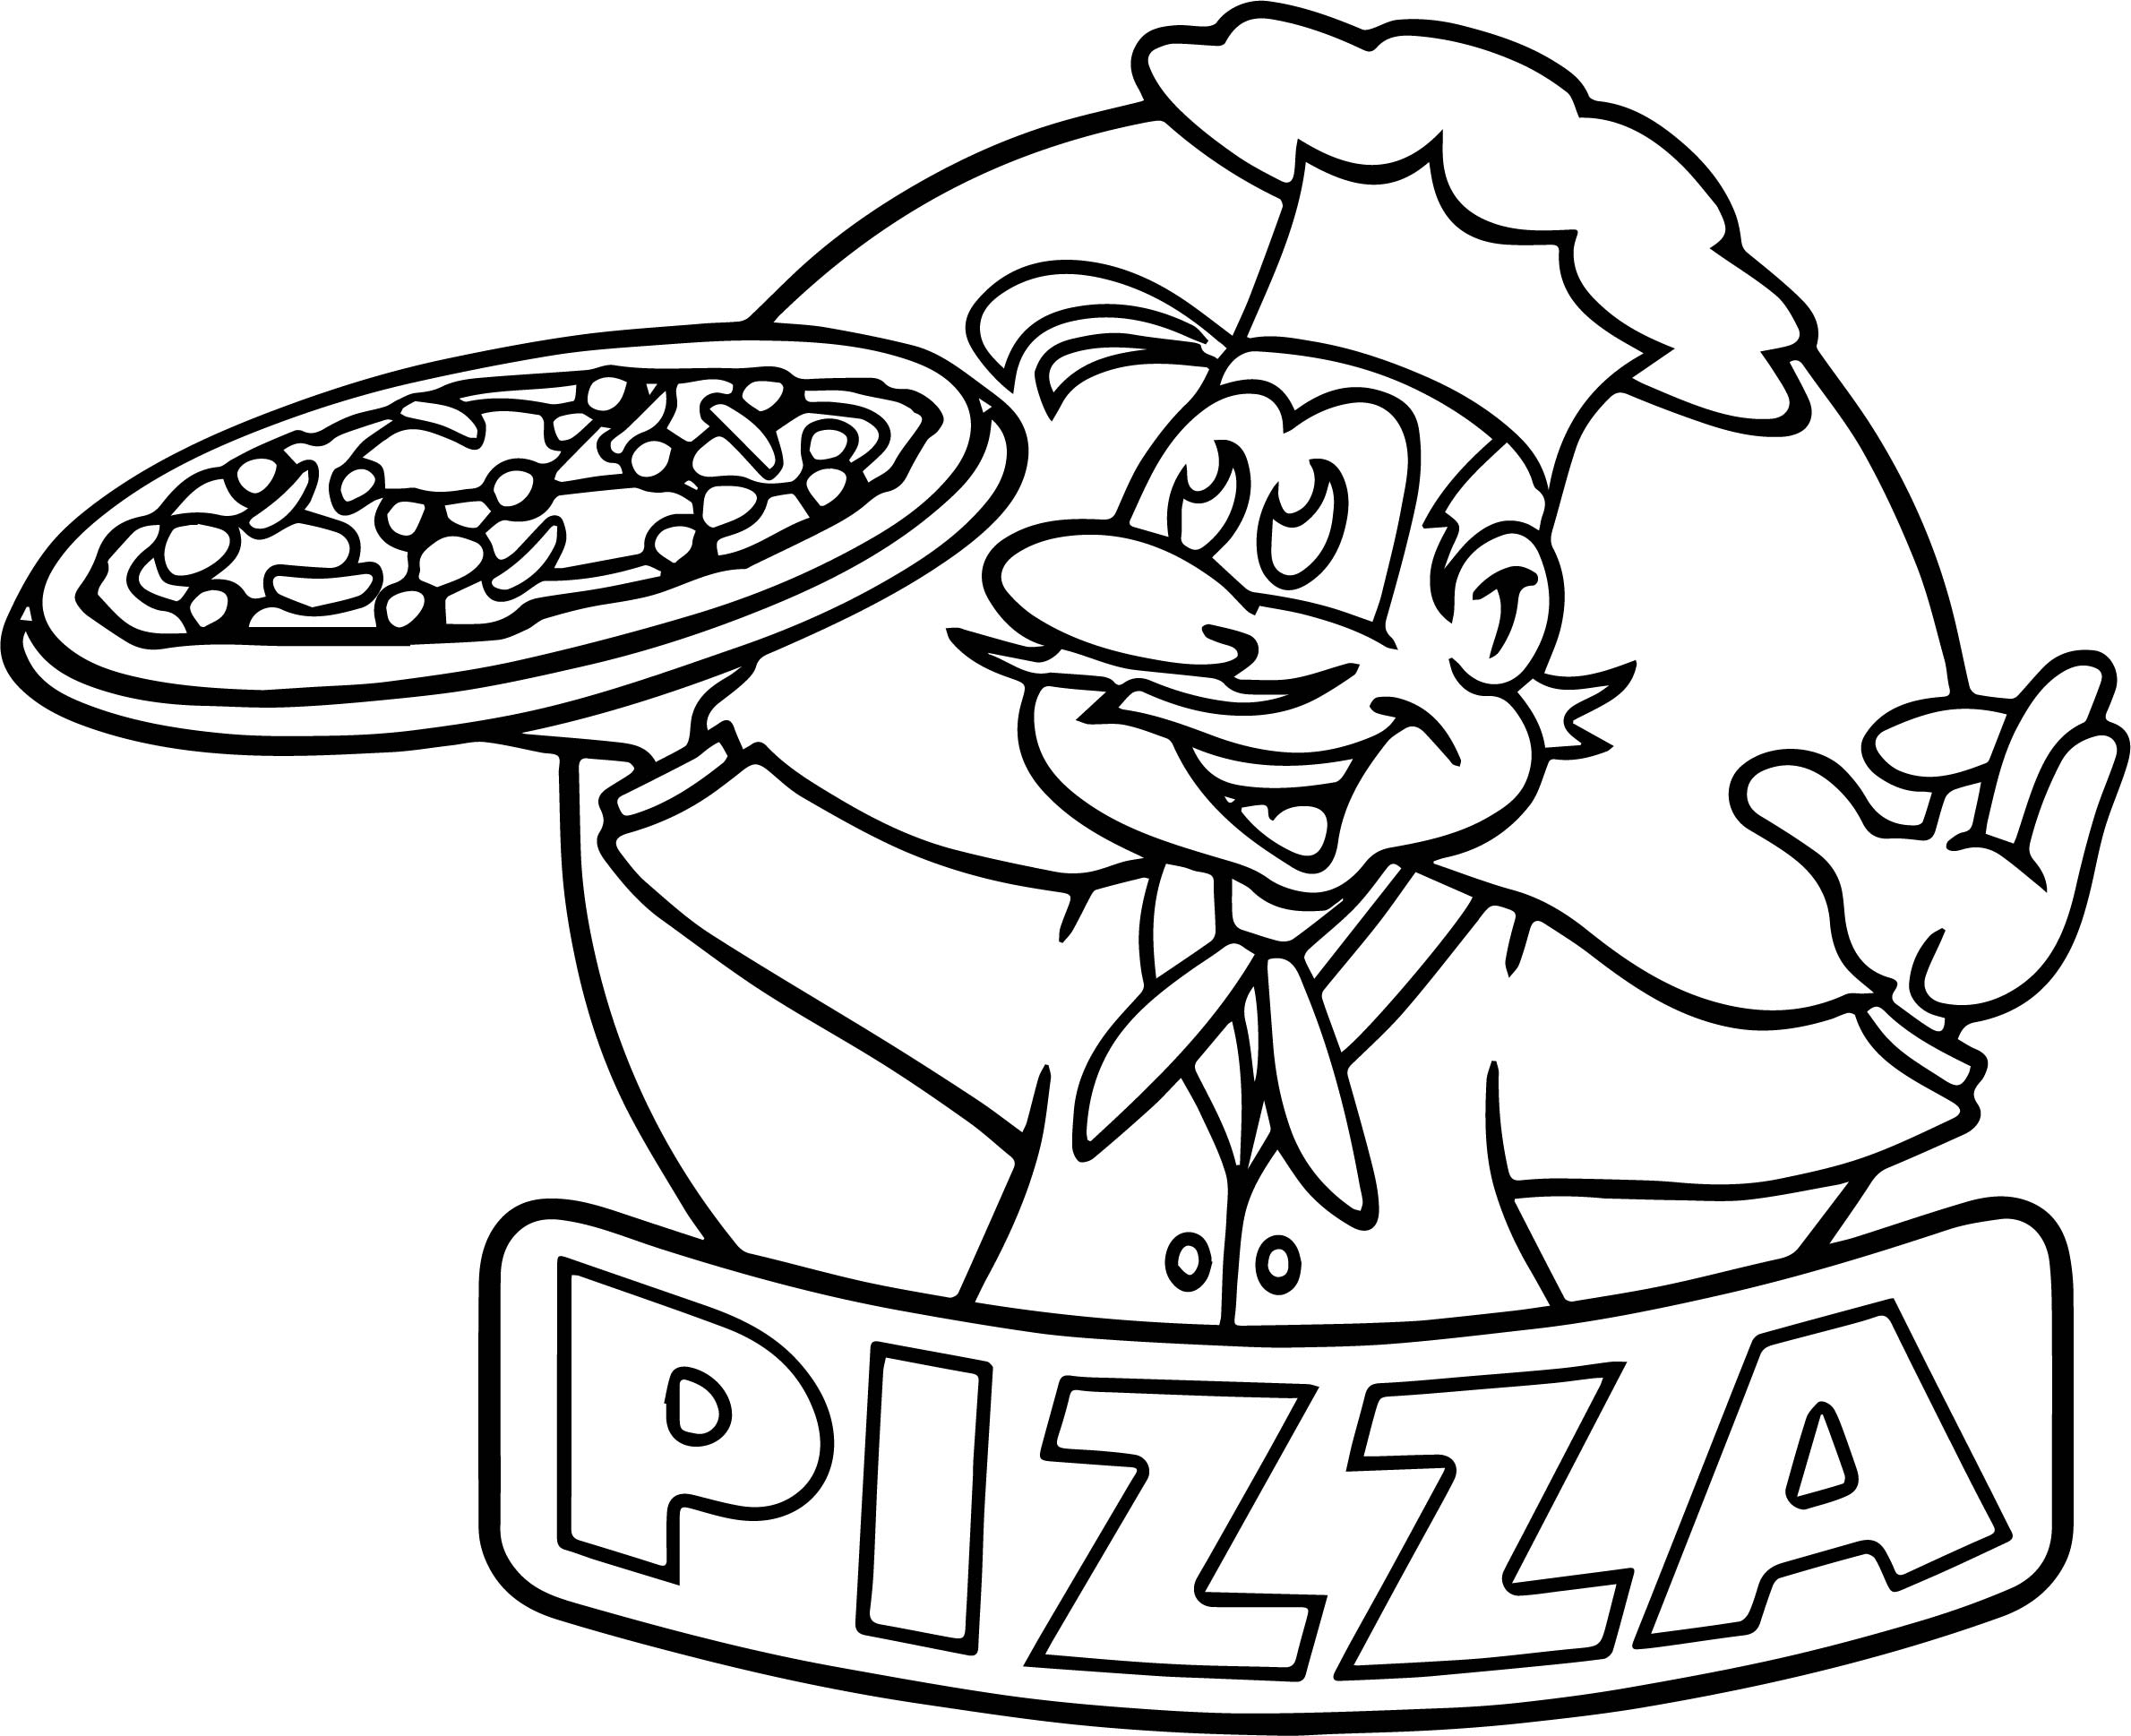 pizza coloring pages for preschool - photo#14